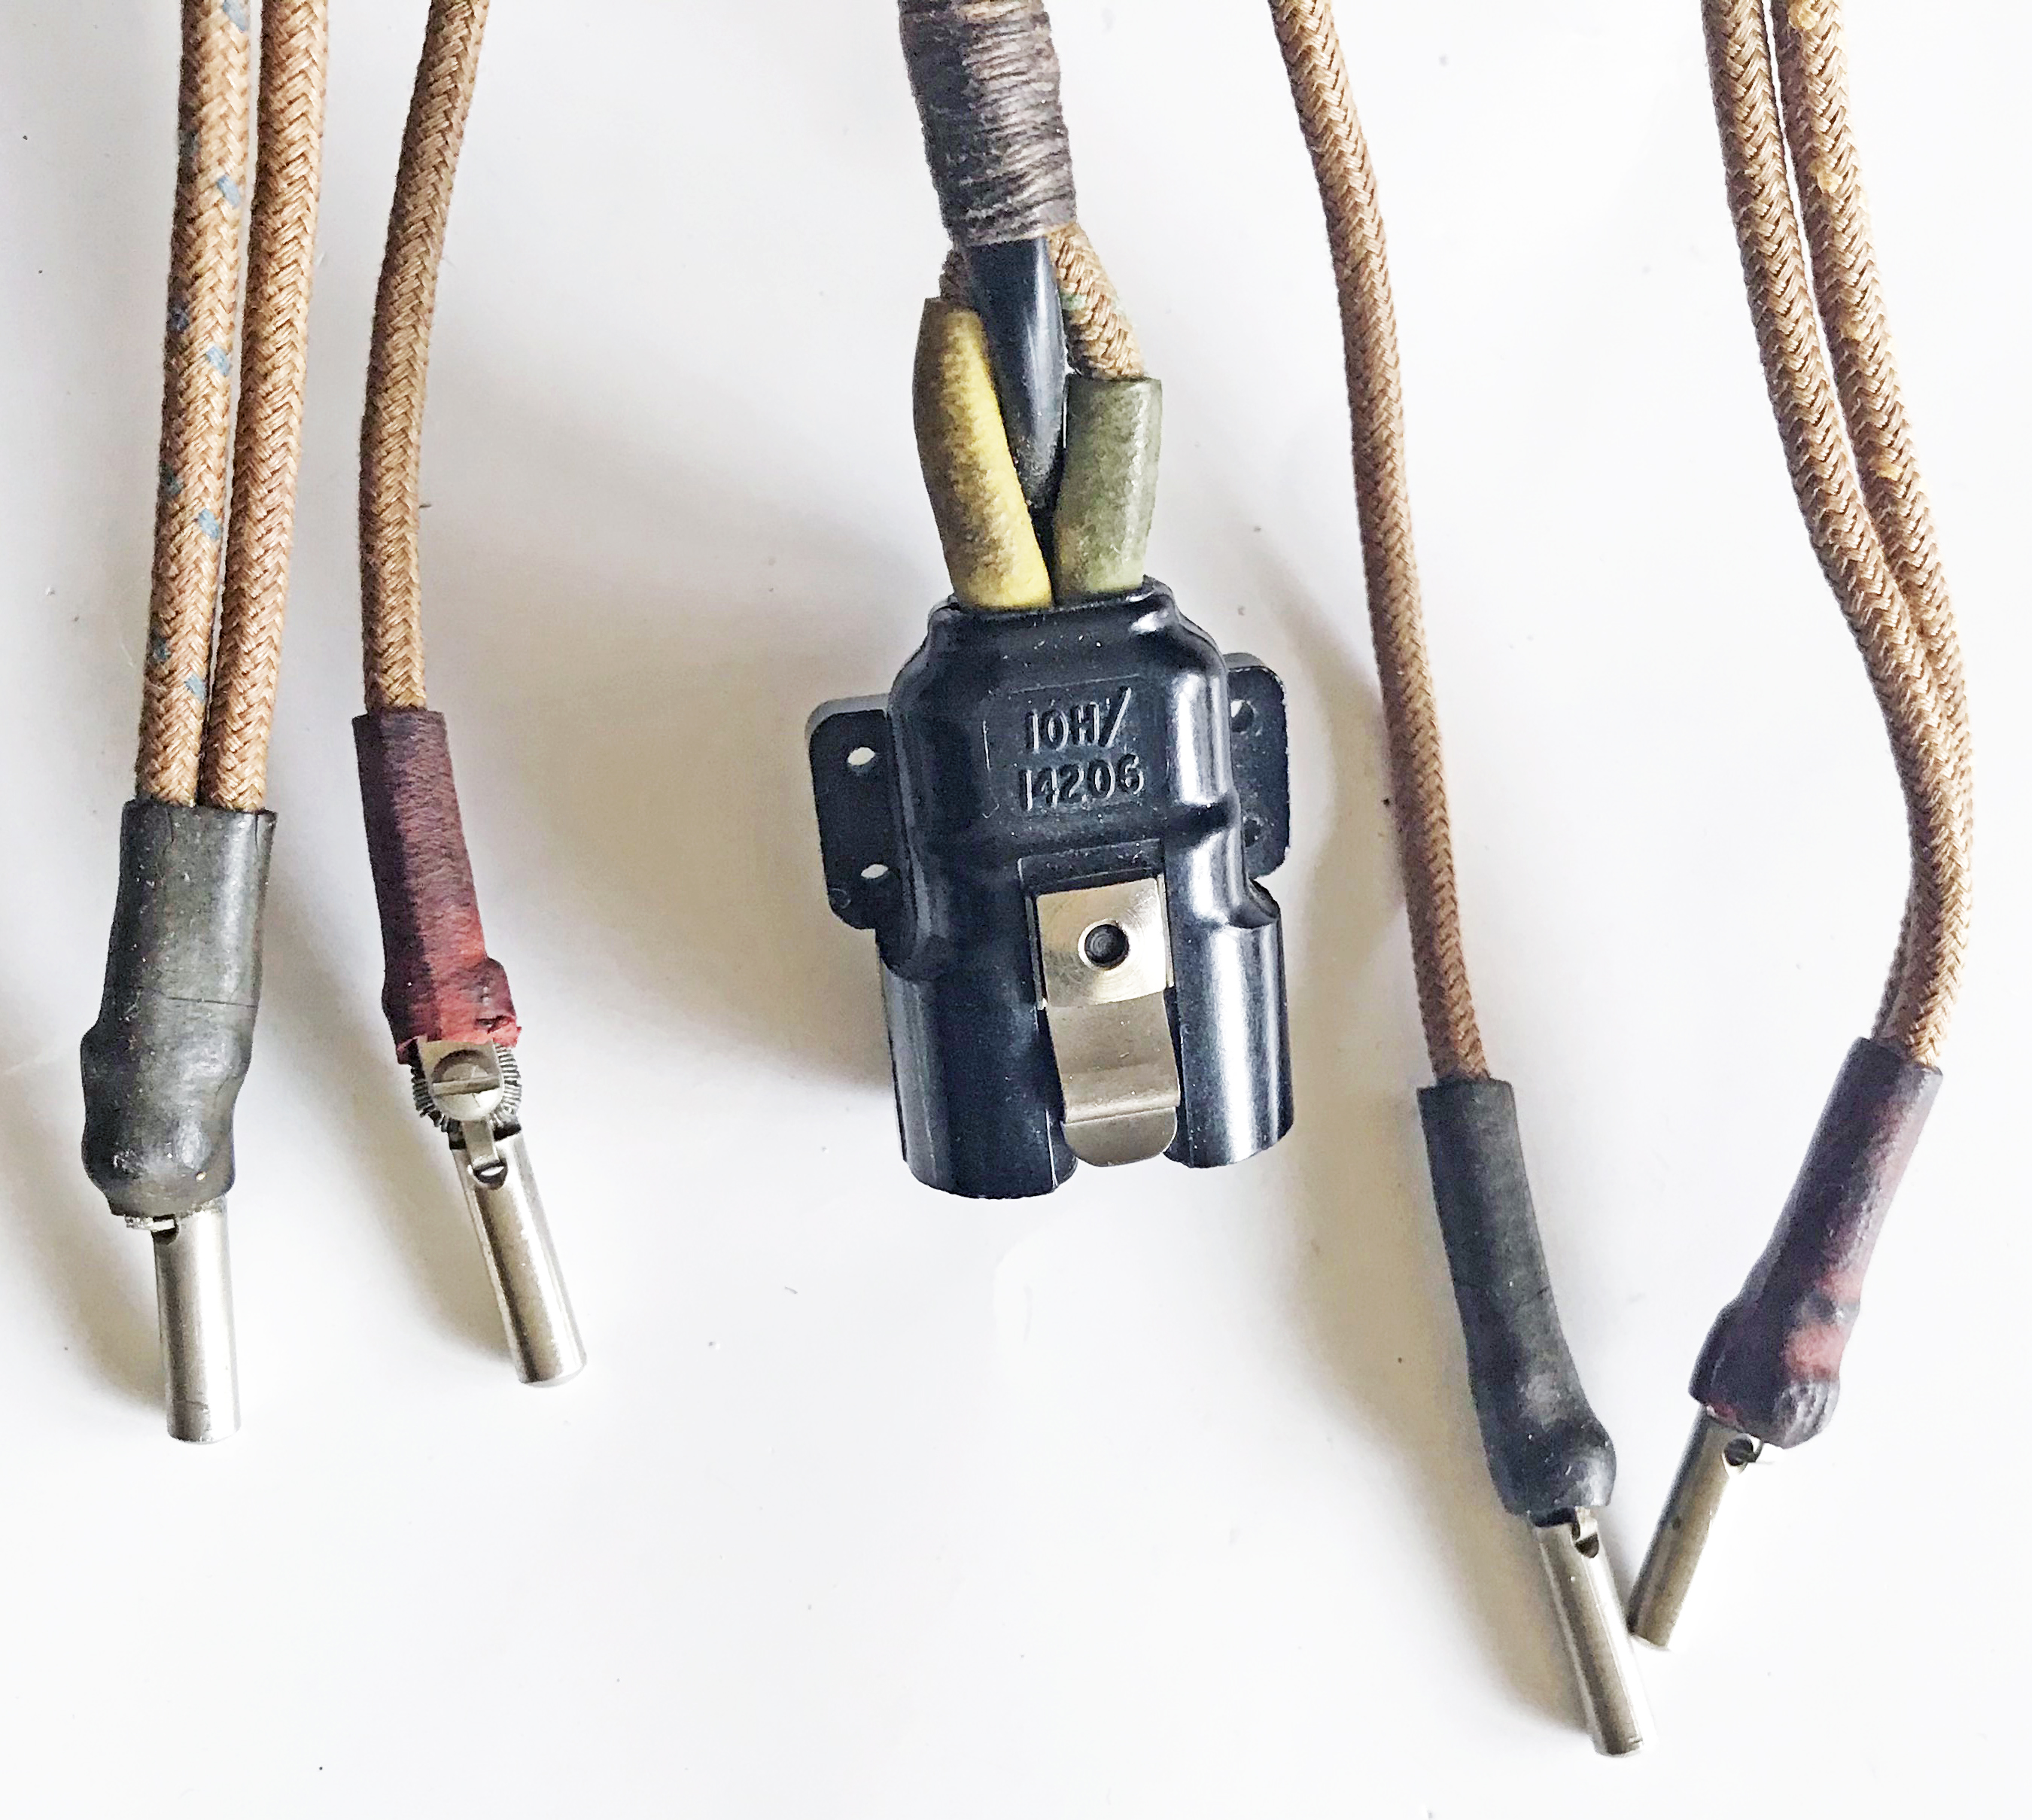 RAF flying helmet wiring loom/cord Type 2186 for using American ANB-H-1 receivers in a Type C, D or